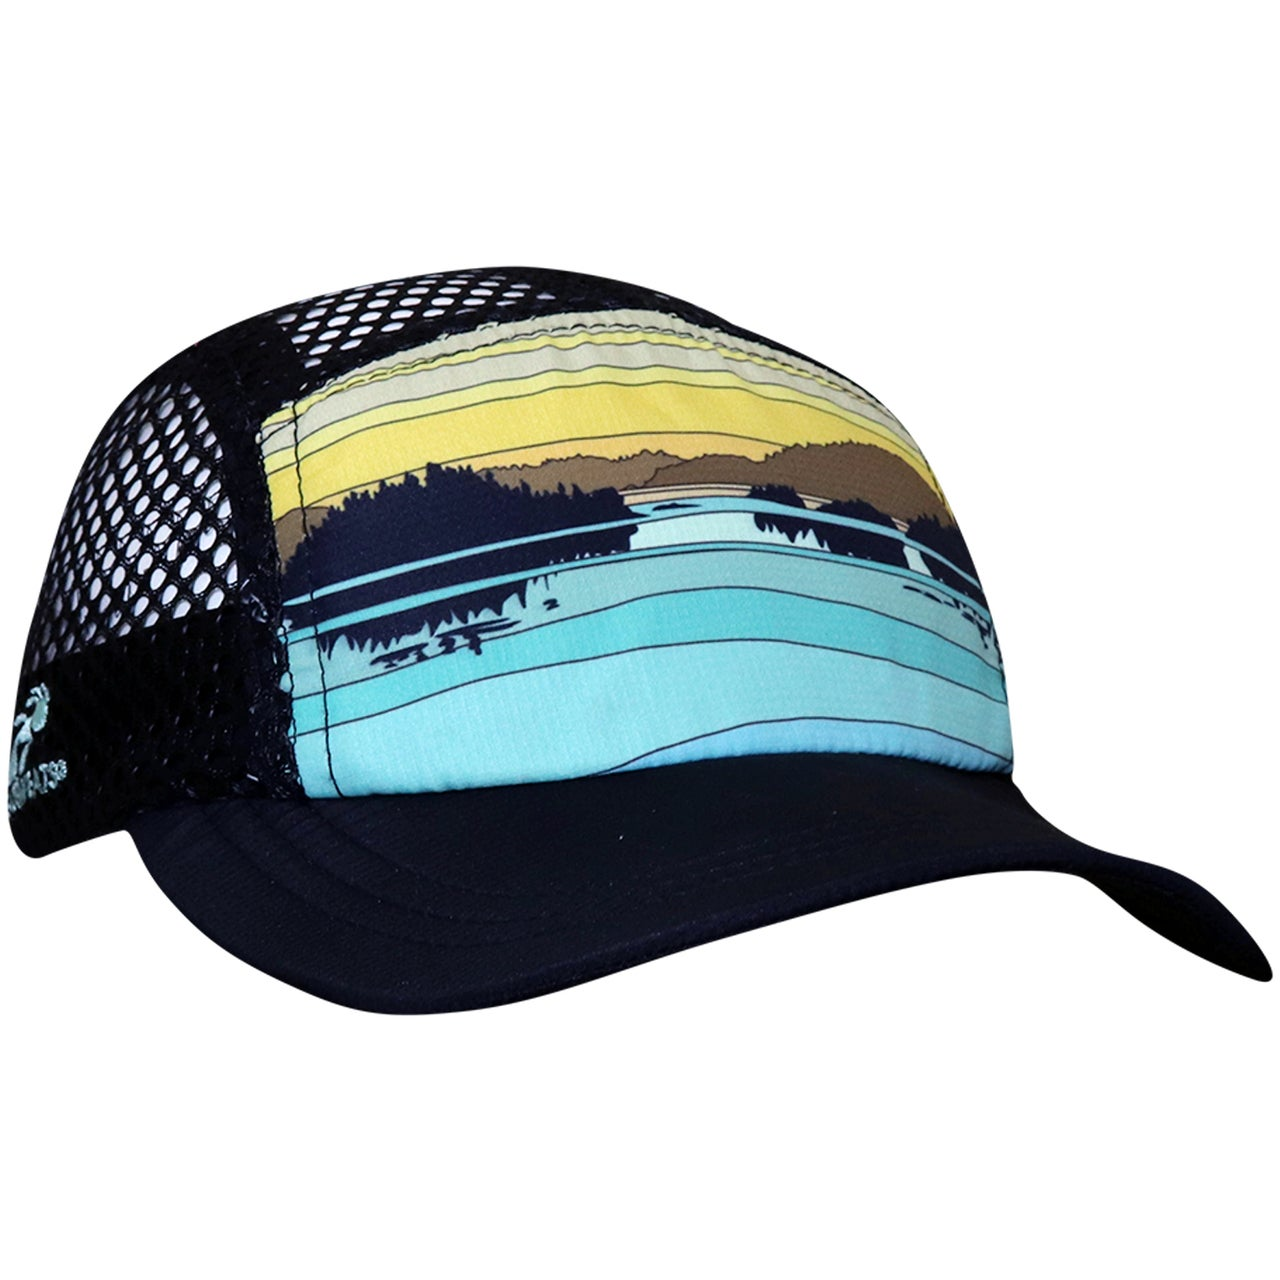 Headsweats Crusher Hat for Father's Day